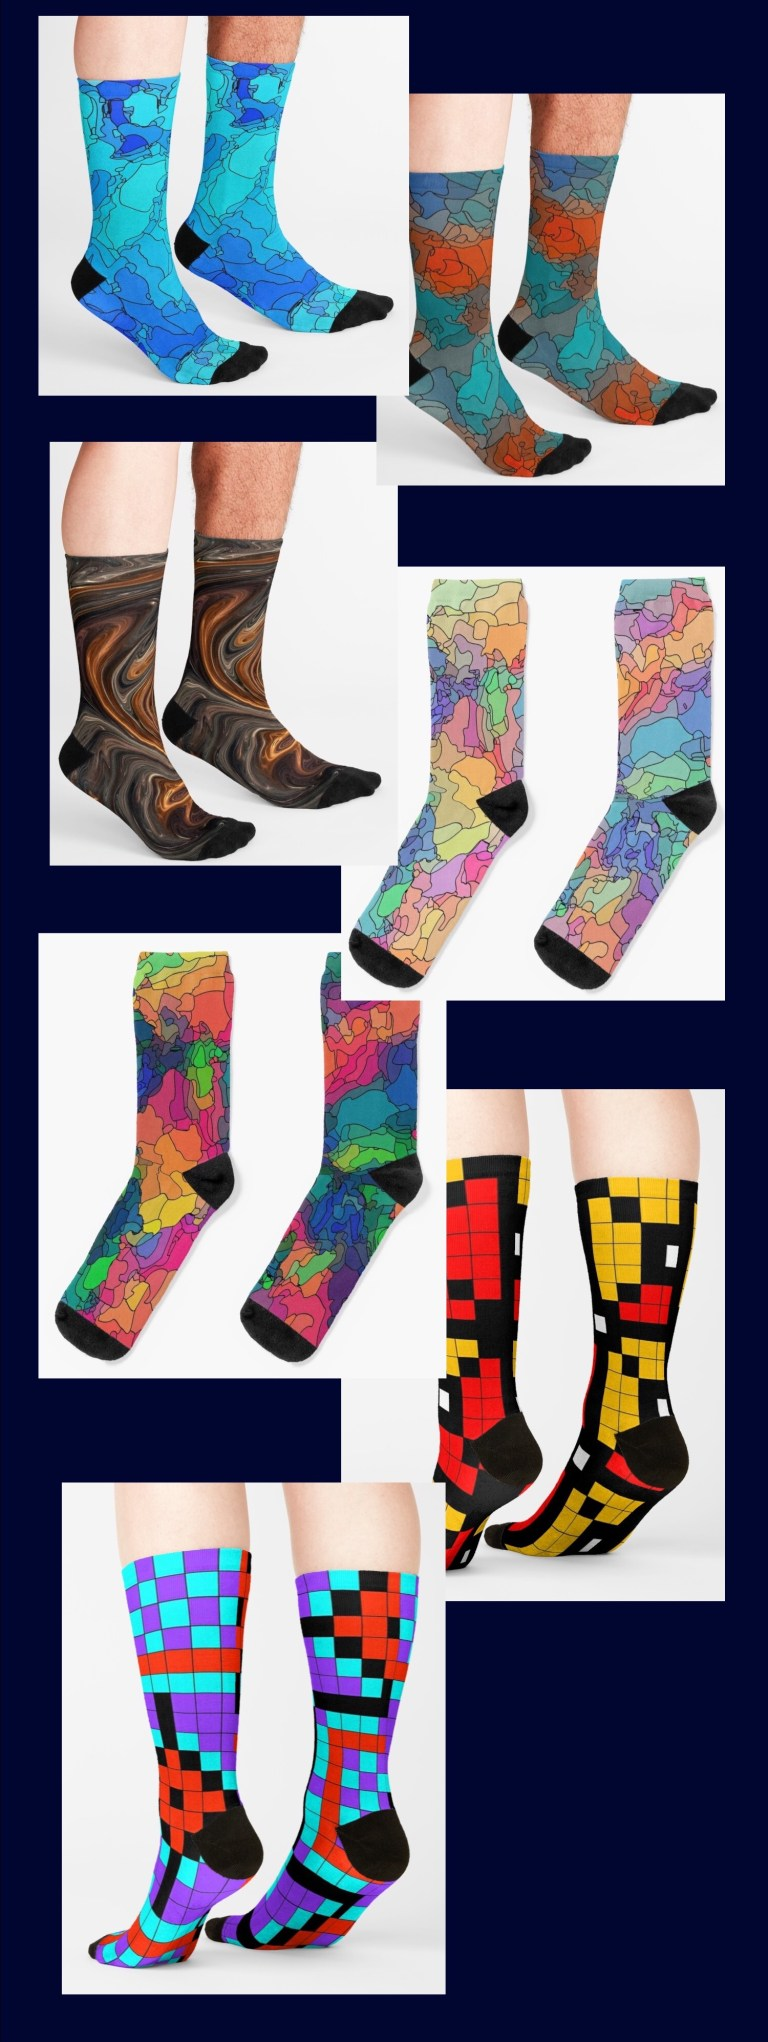 Socks in one size fits most men and women, each one available in up to 25 of my designs.